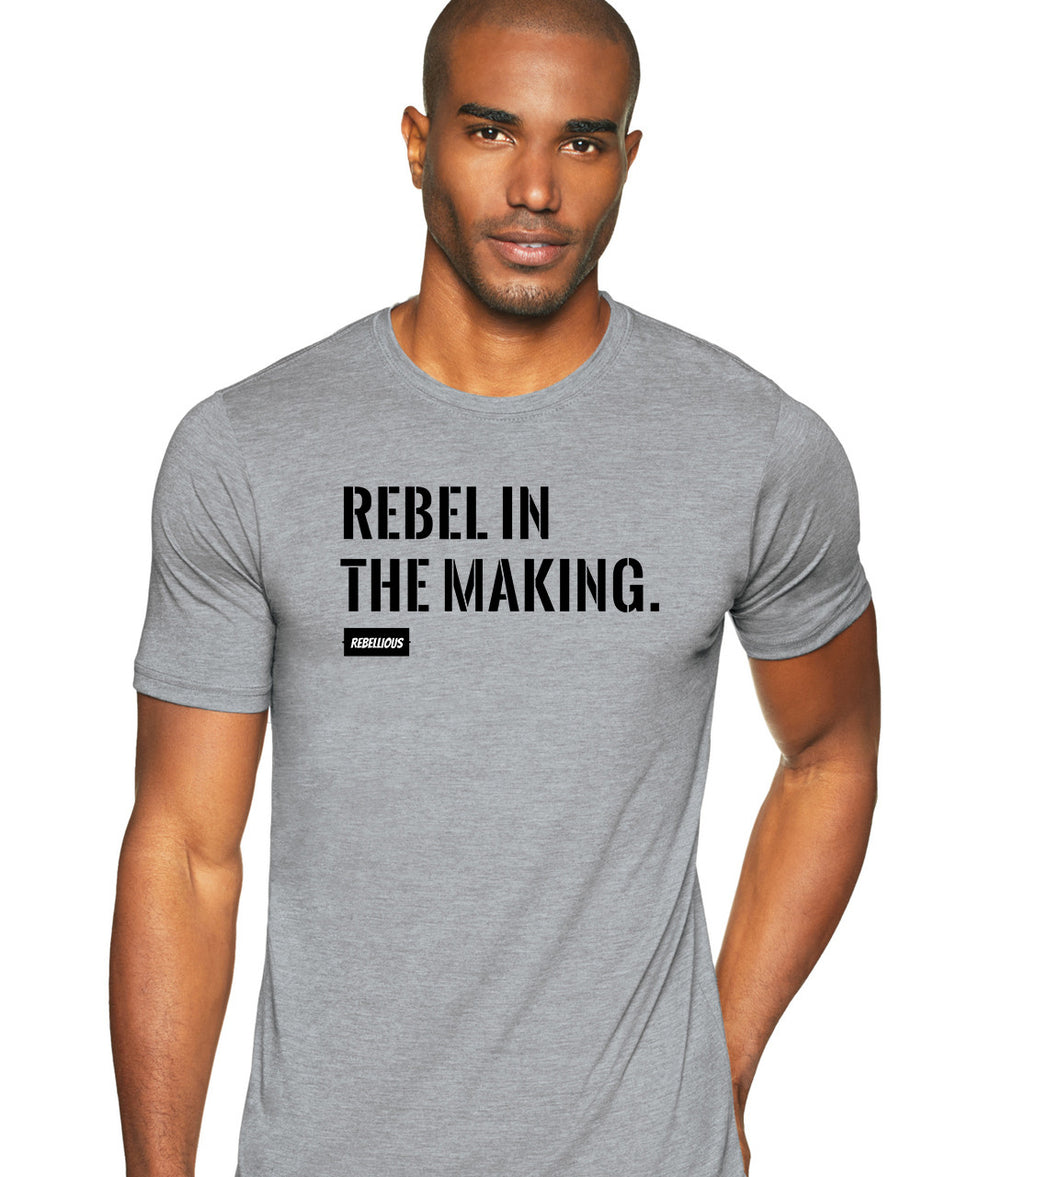 T-Shirt: Rebel in the Making